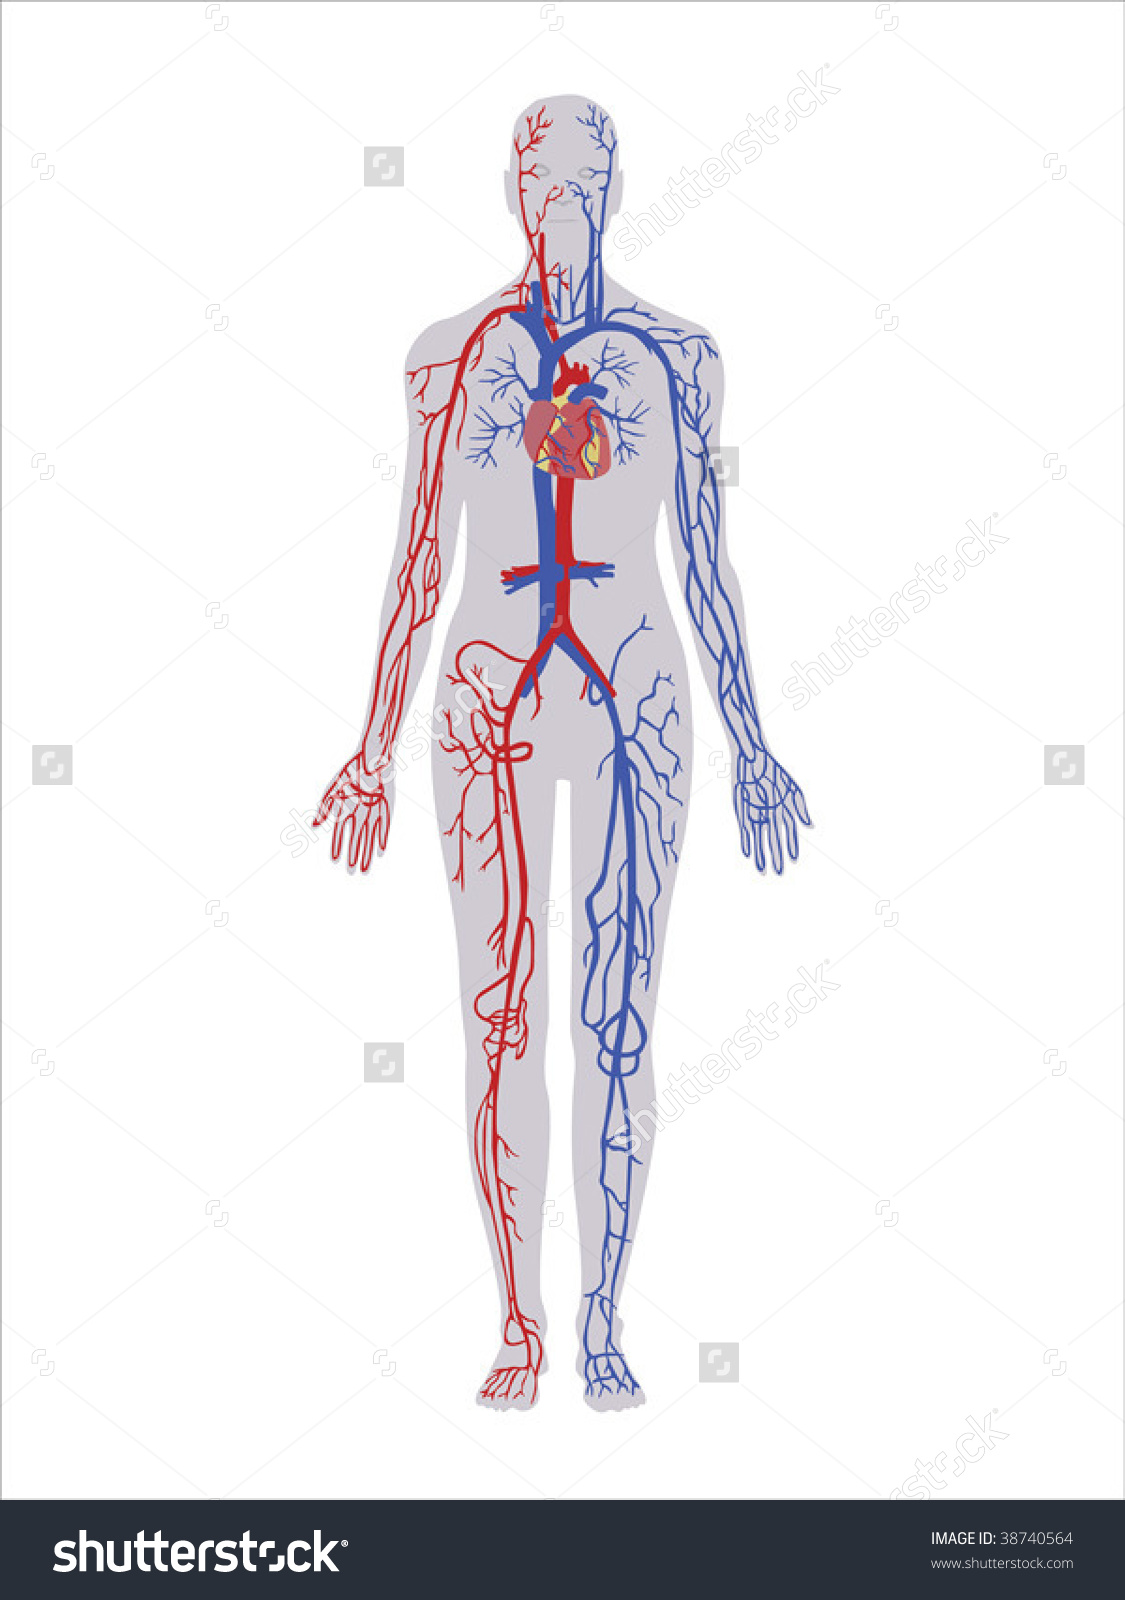 Principal Veins Arteries Vector Stock Vector 38740564.